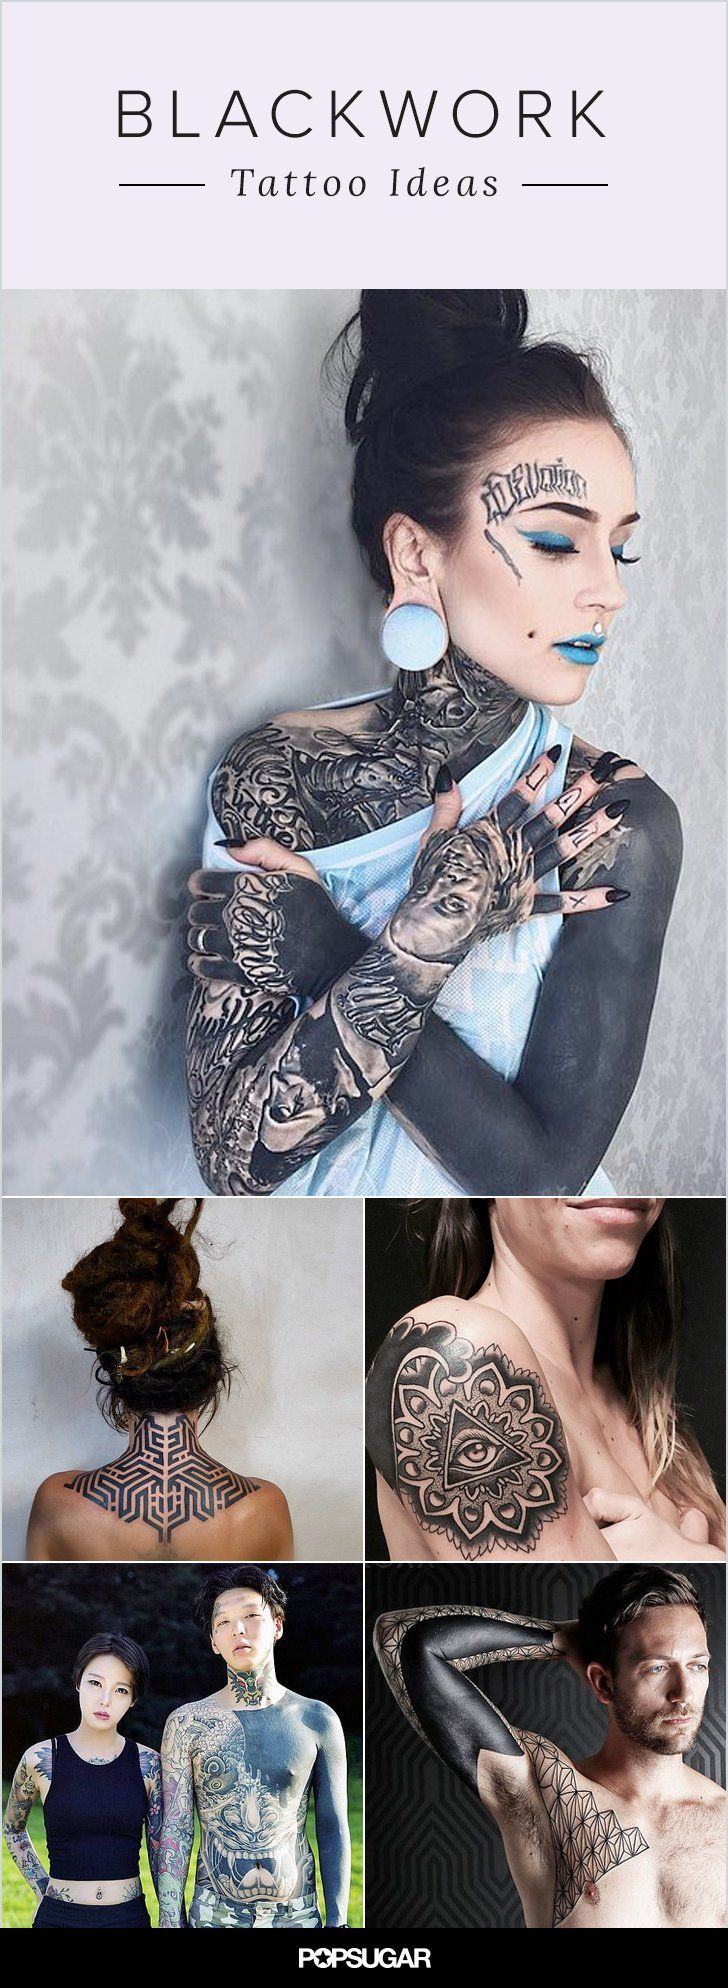 Studies show that black ink helps prevent skin cancer, so get inspired by these beautiful blackwork tattoos!